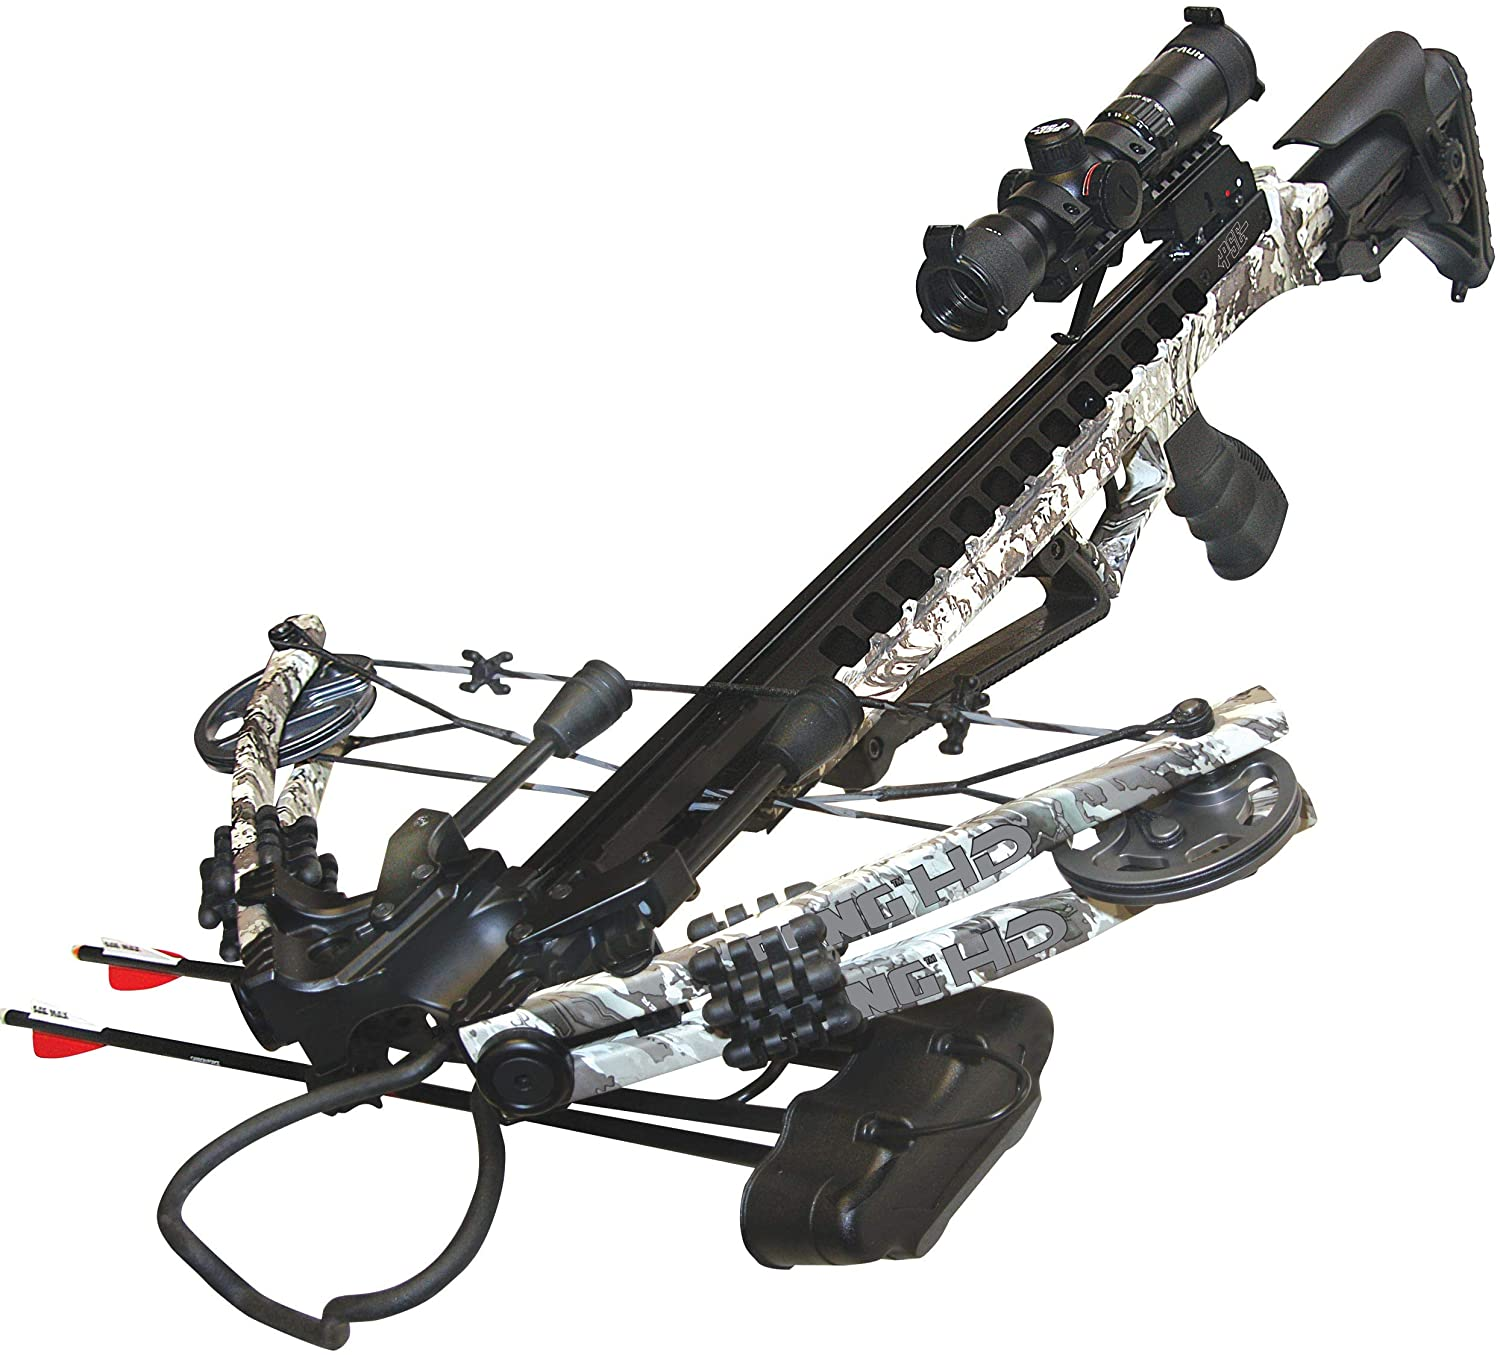 PSE FANG HD CROSSBOW REVIEW